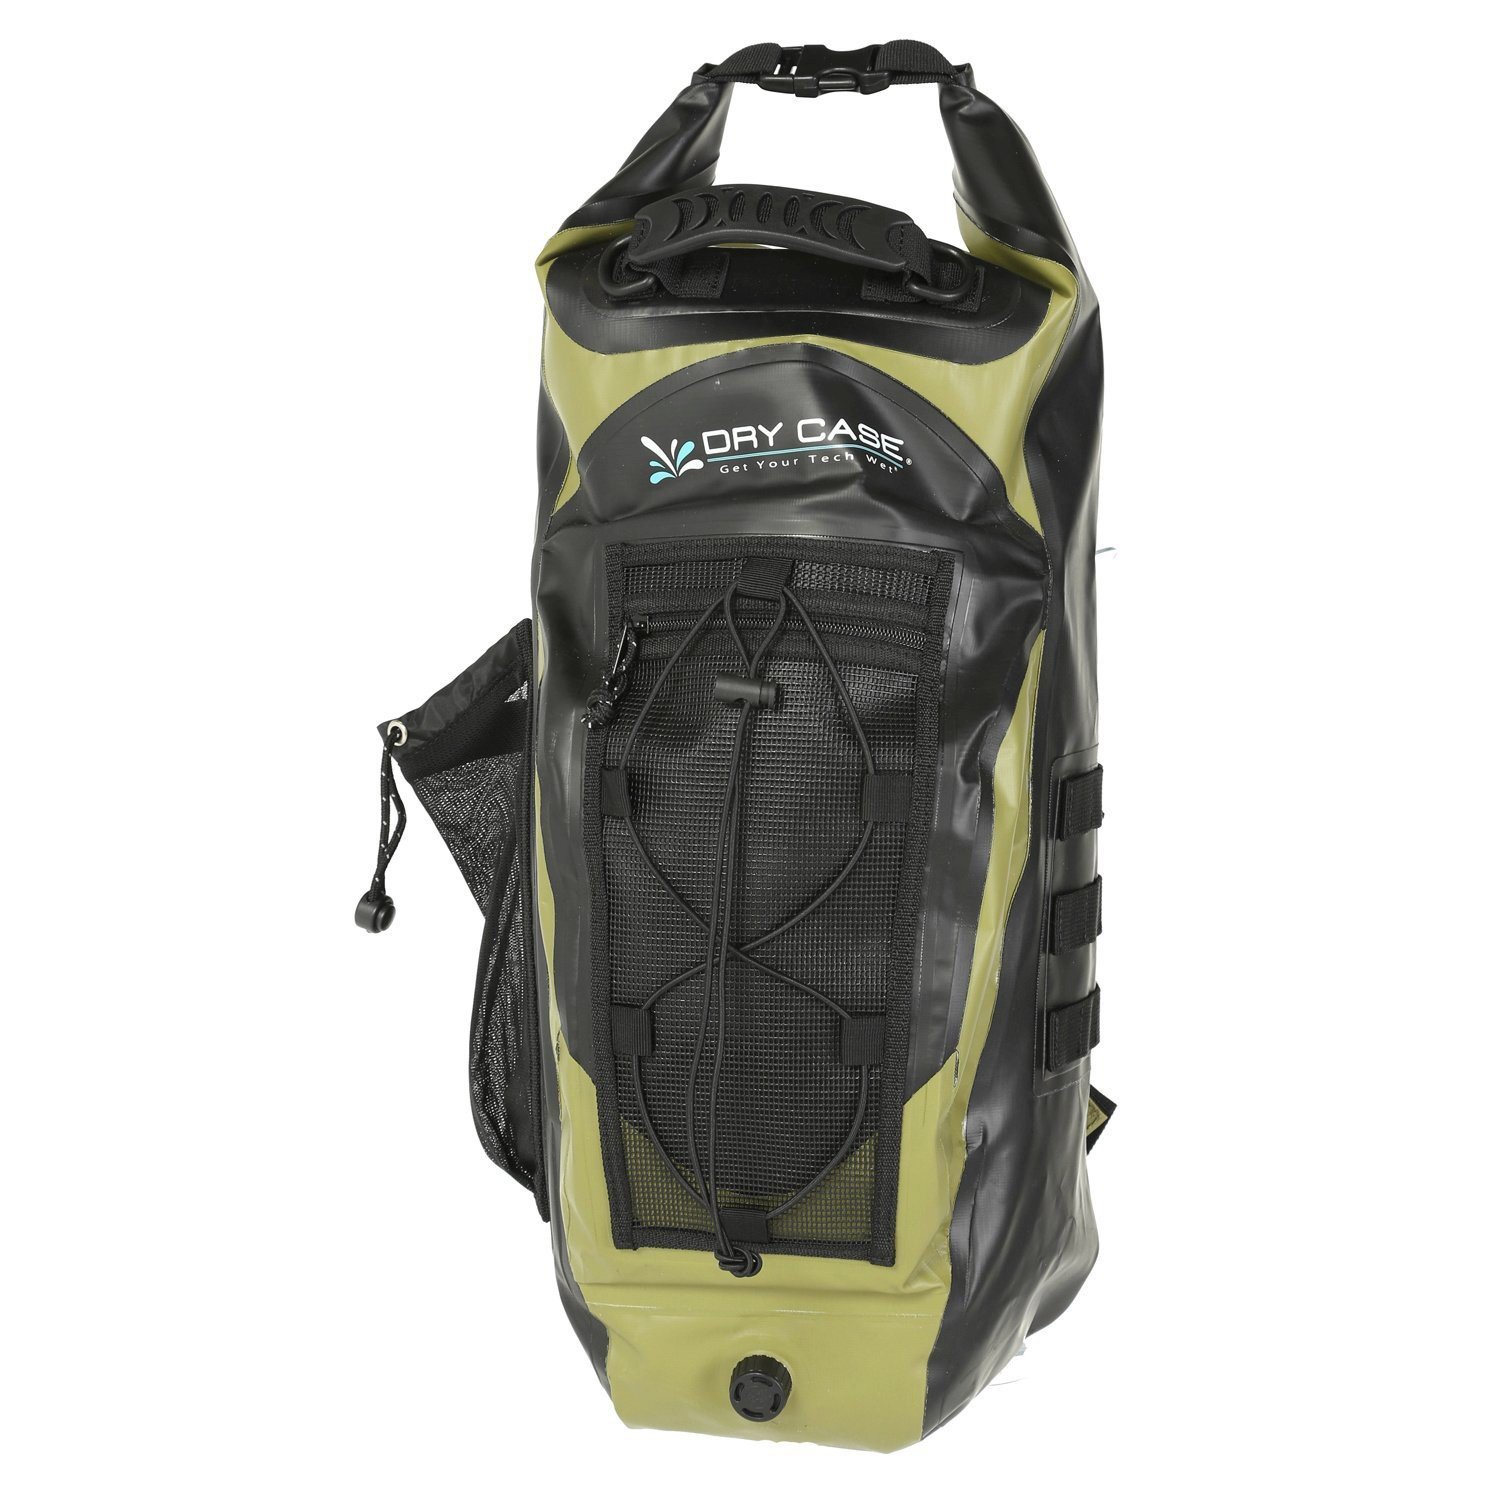 Drycase Basin Waterproof Backpack - Front